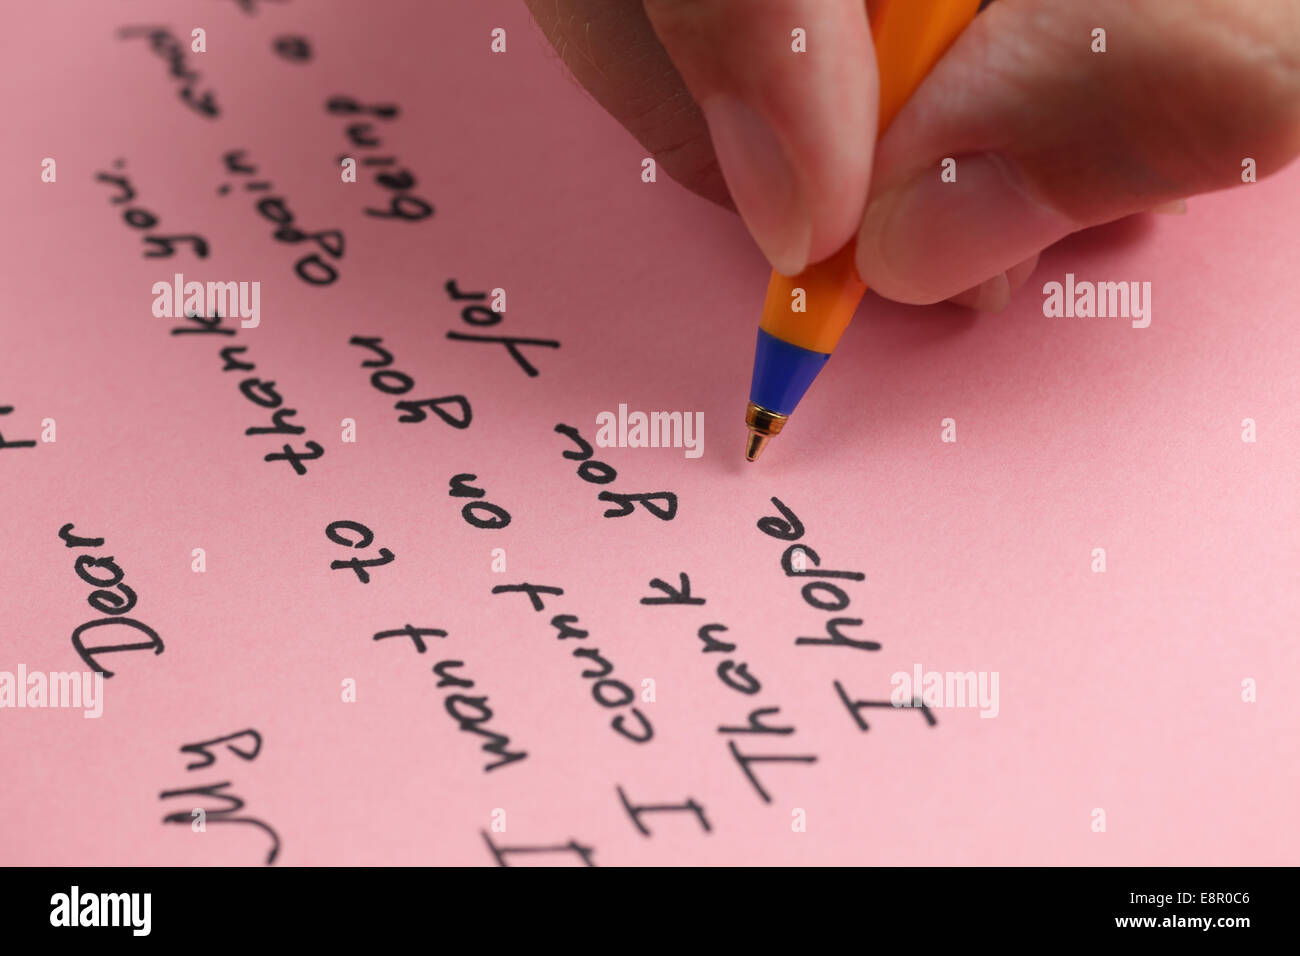 Writing letter to a friend on pink paper. - Stock Image